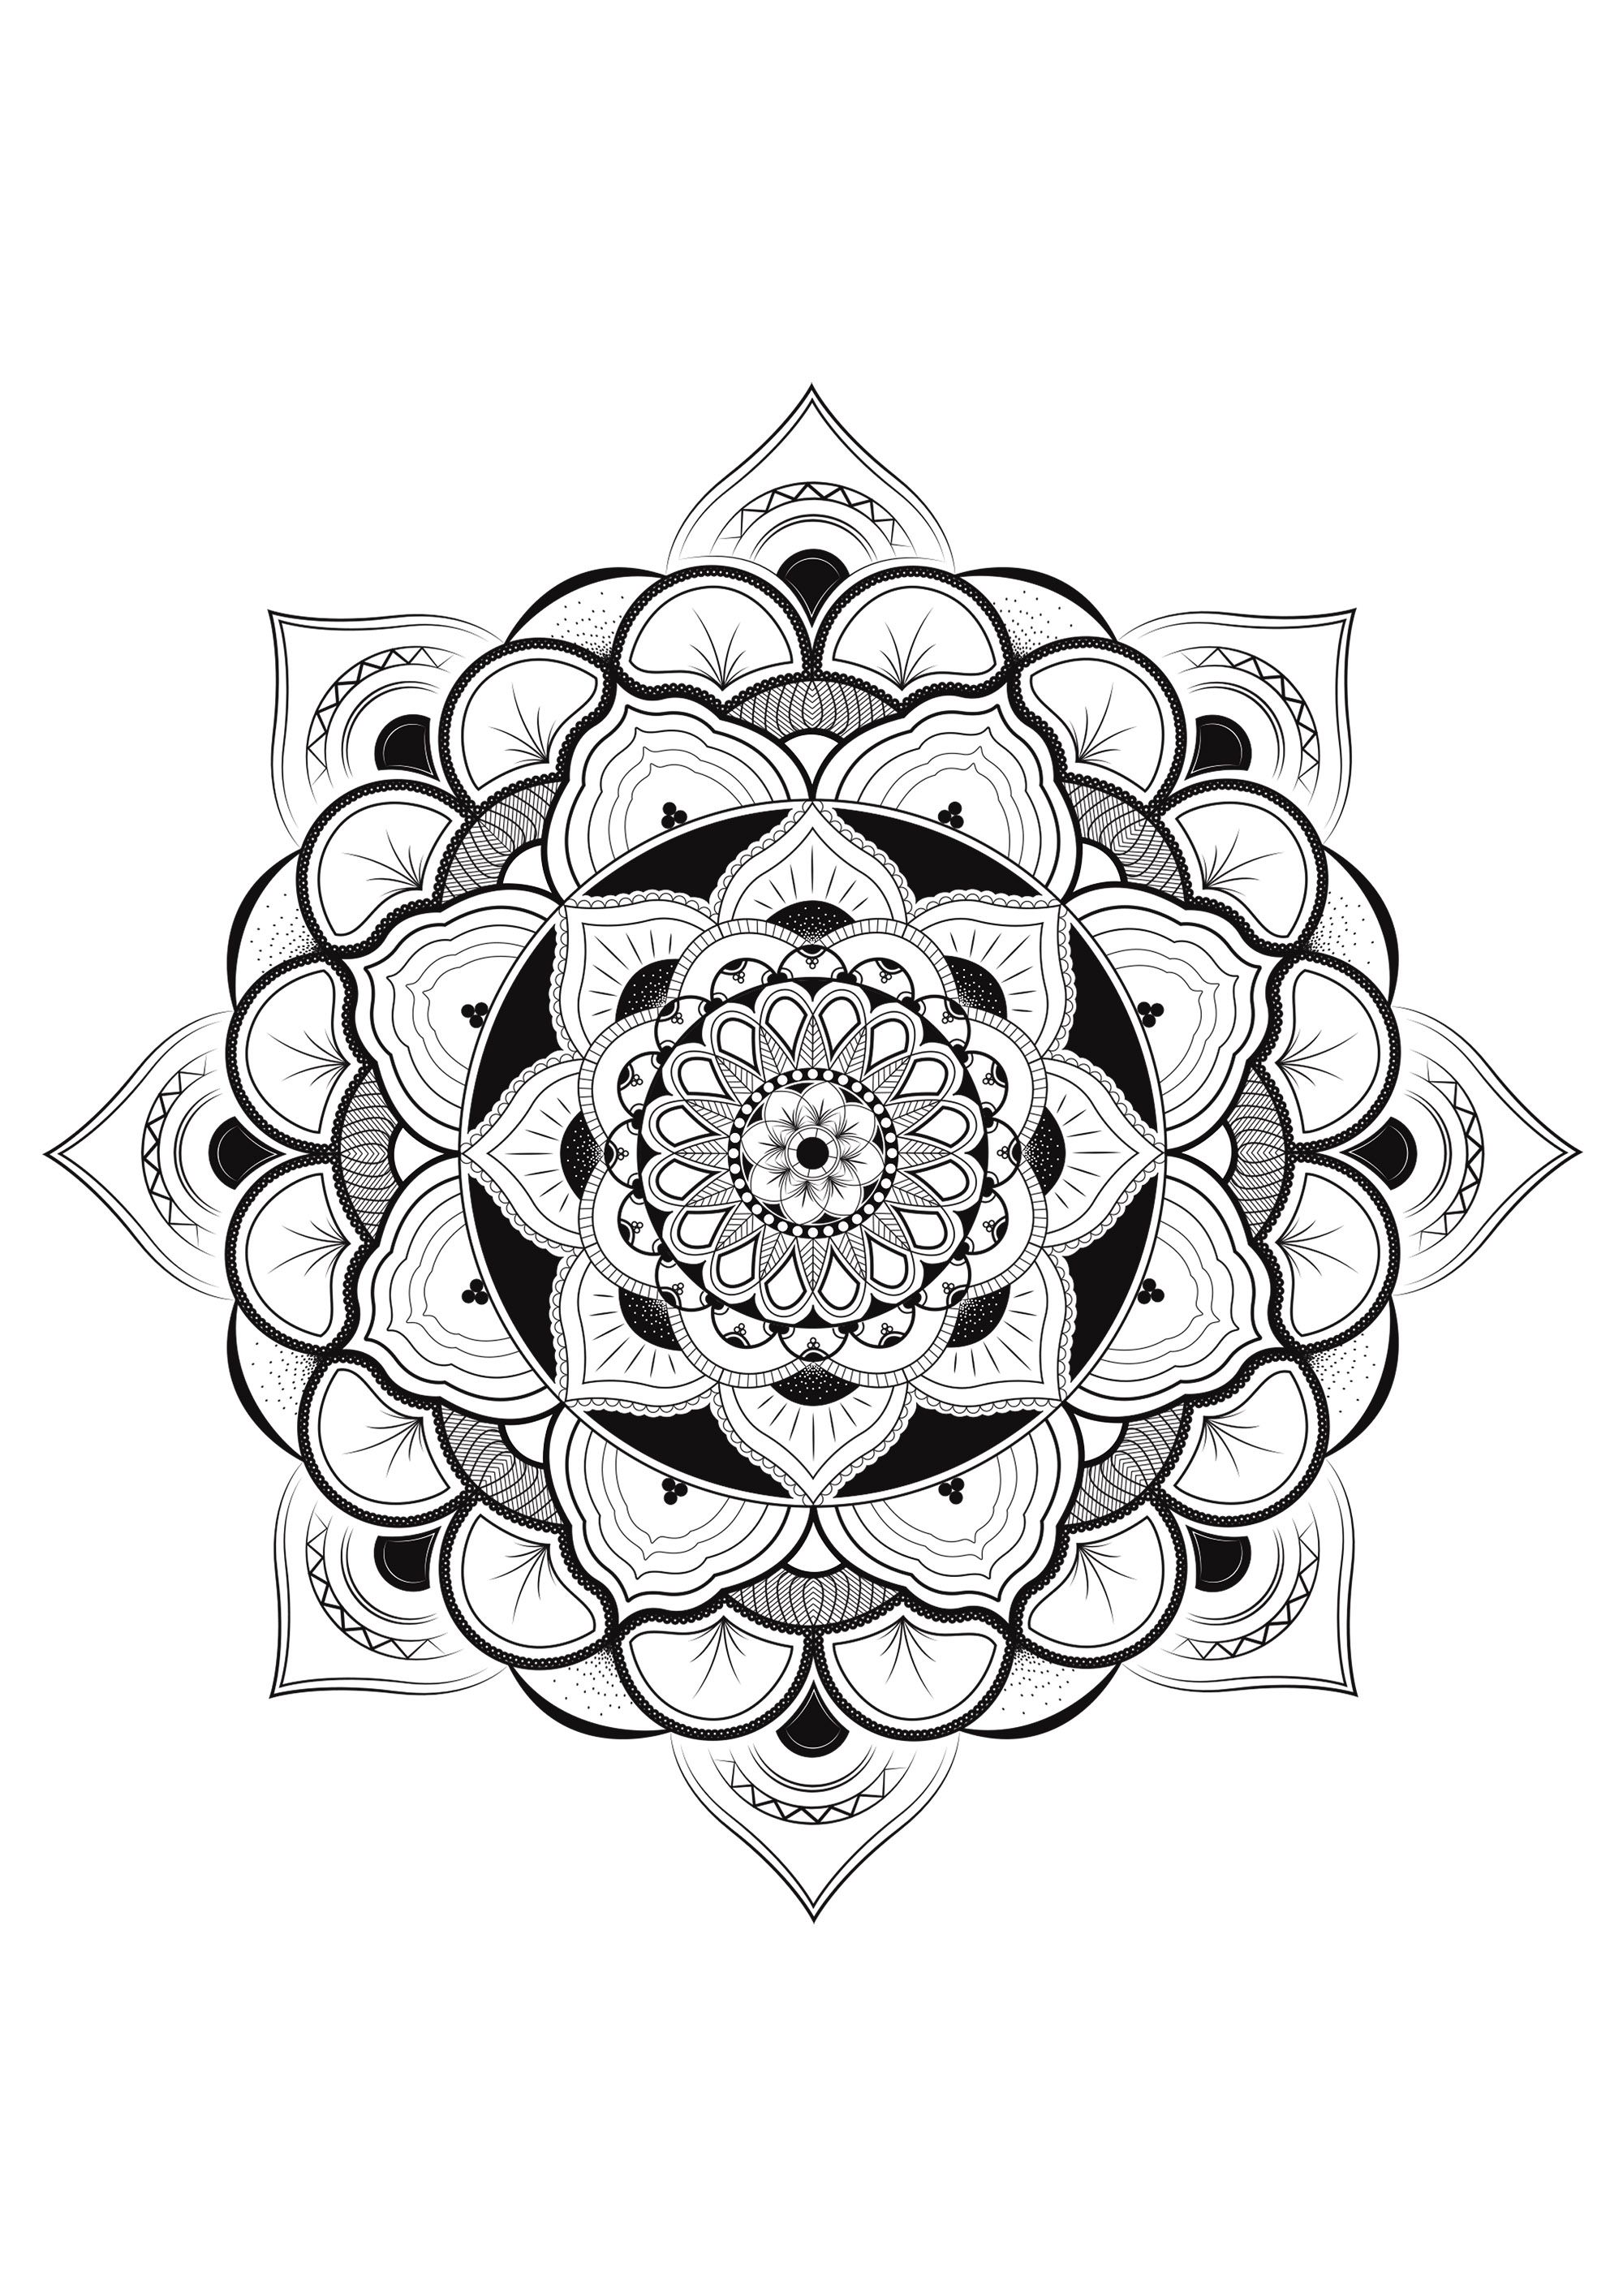 Pretty Mandala With Lot Of DetailsFrom The Gallery MandalasArtist Louise